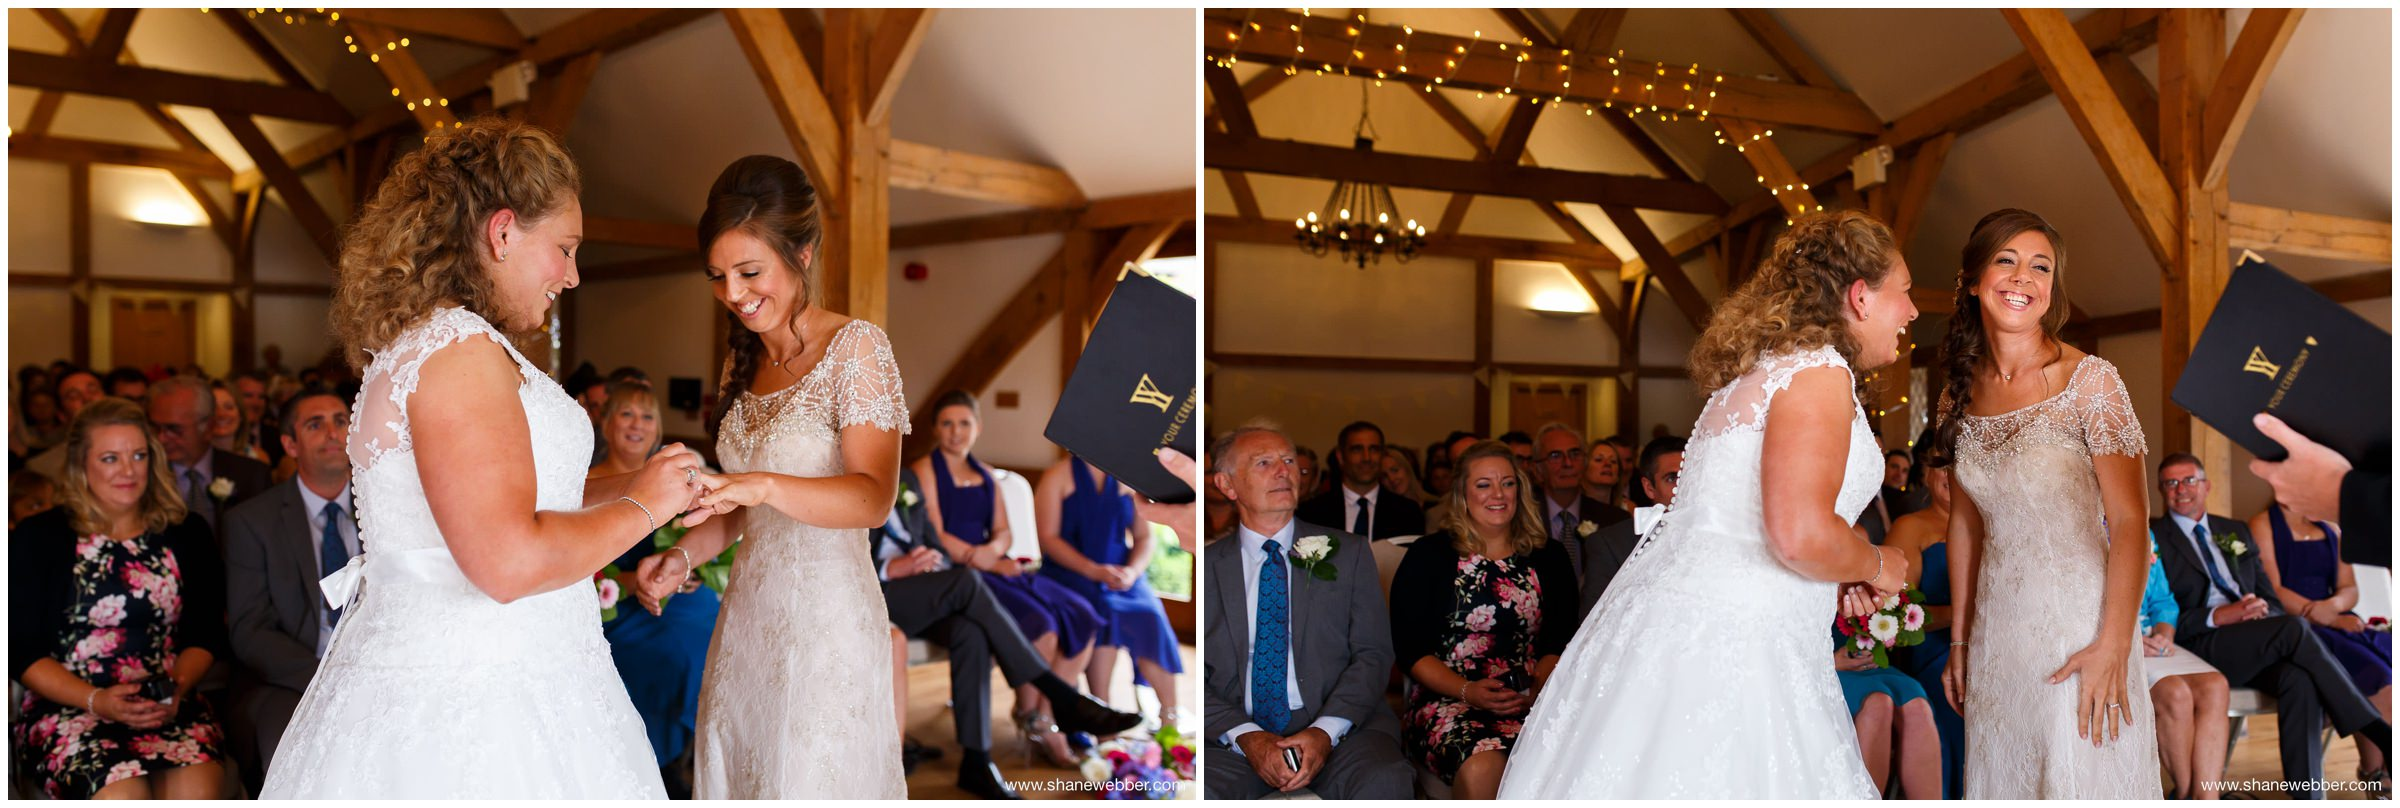 Wedding ceremony at Sandhole Oak Barn